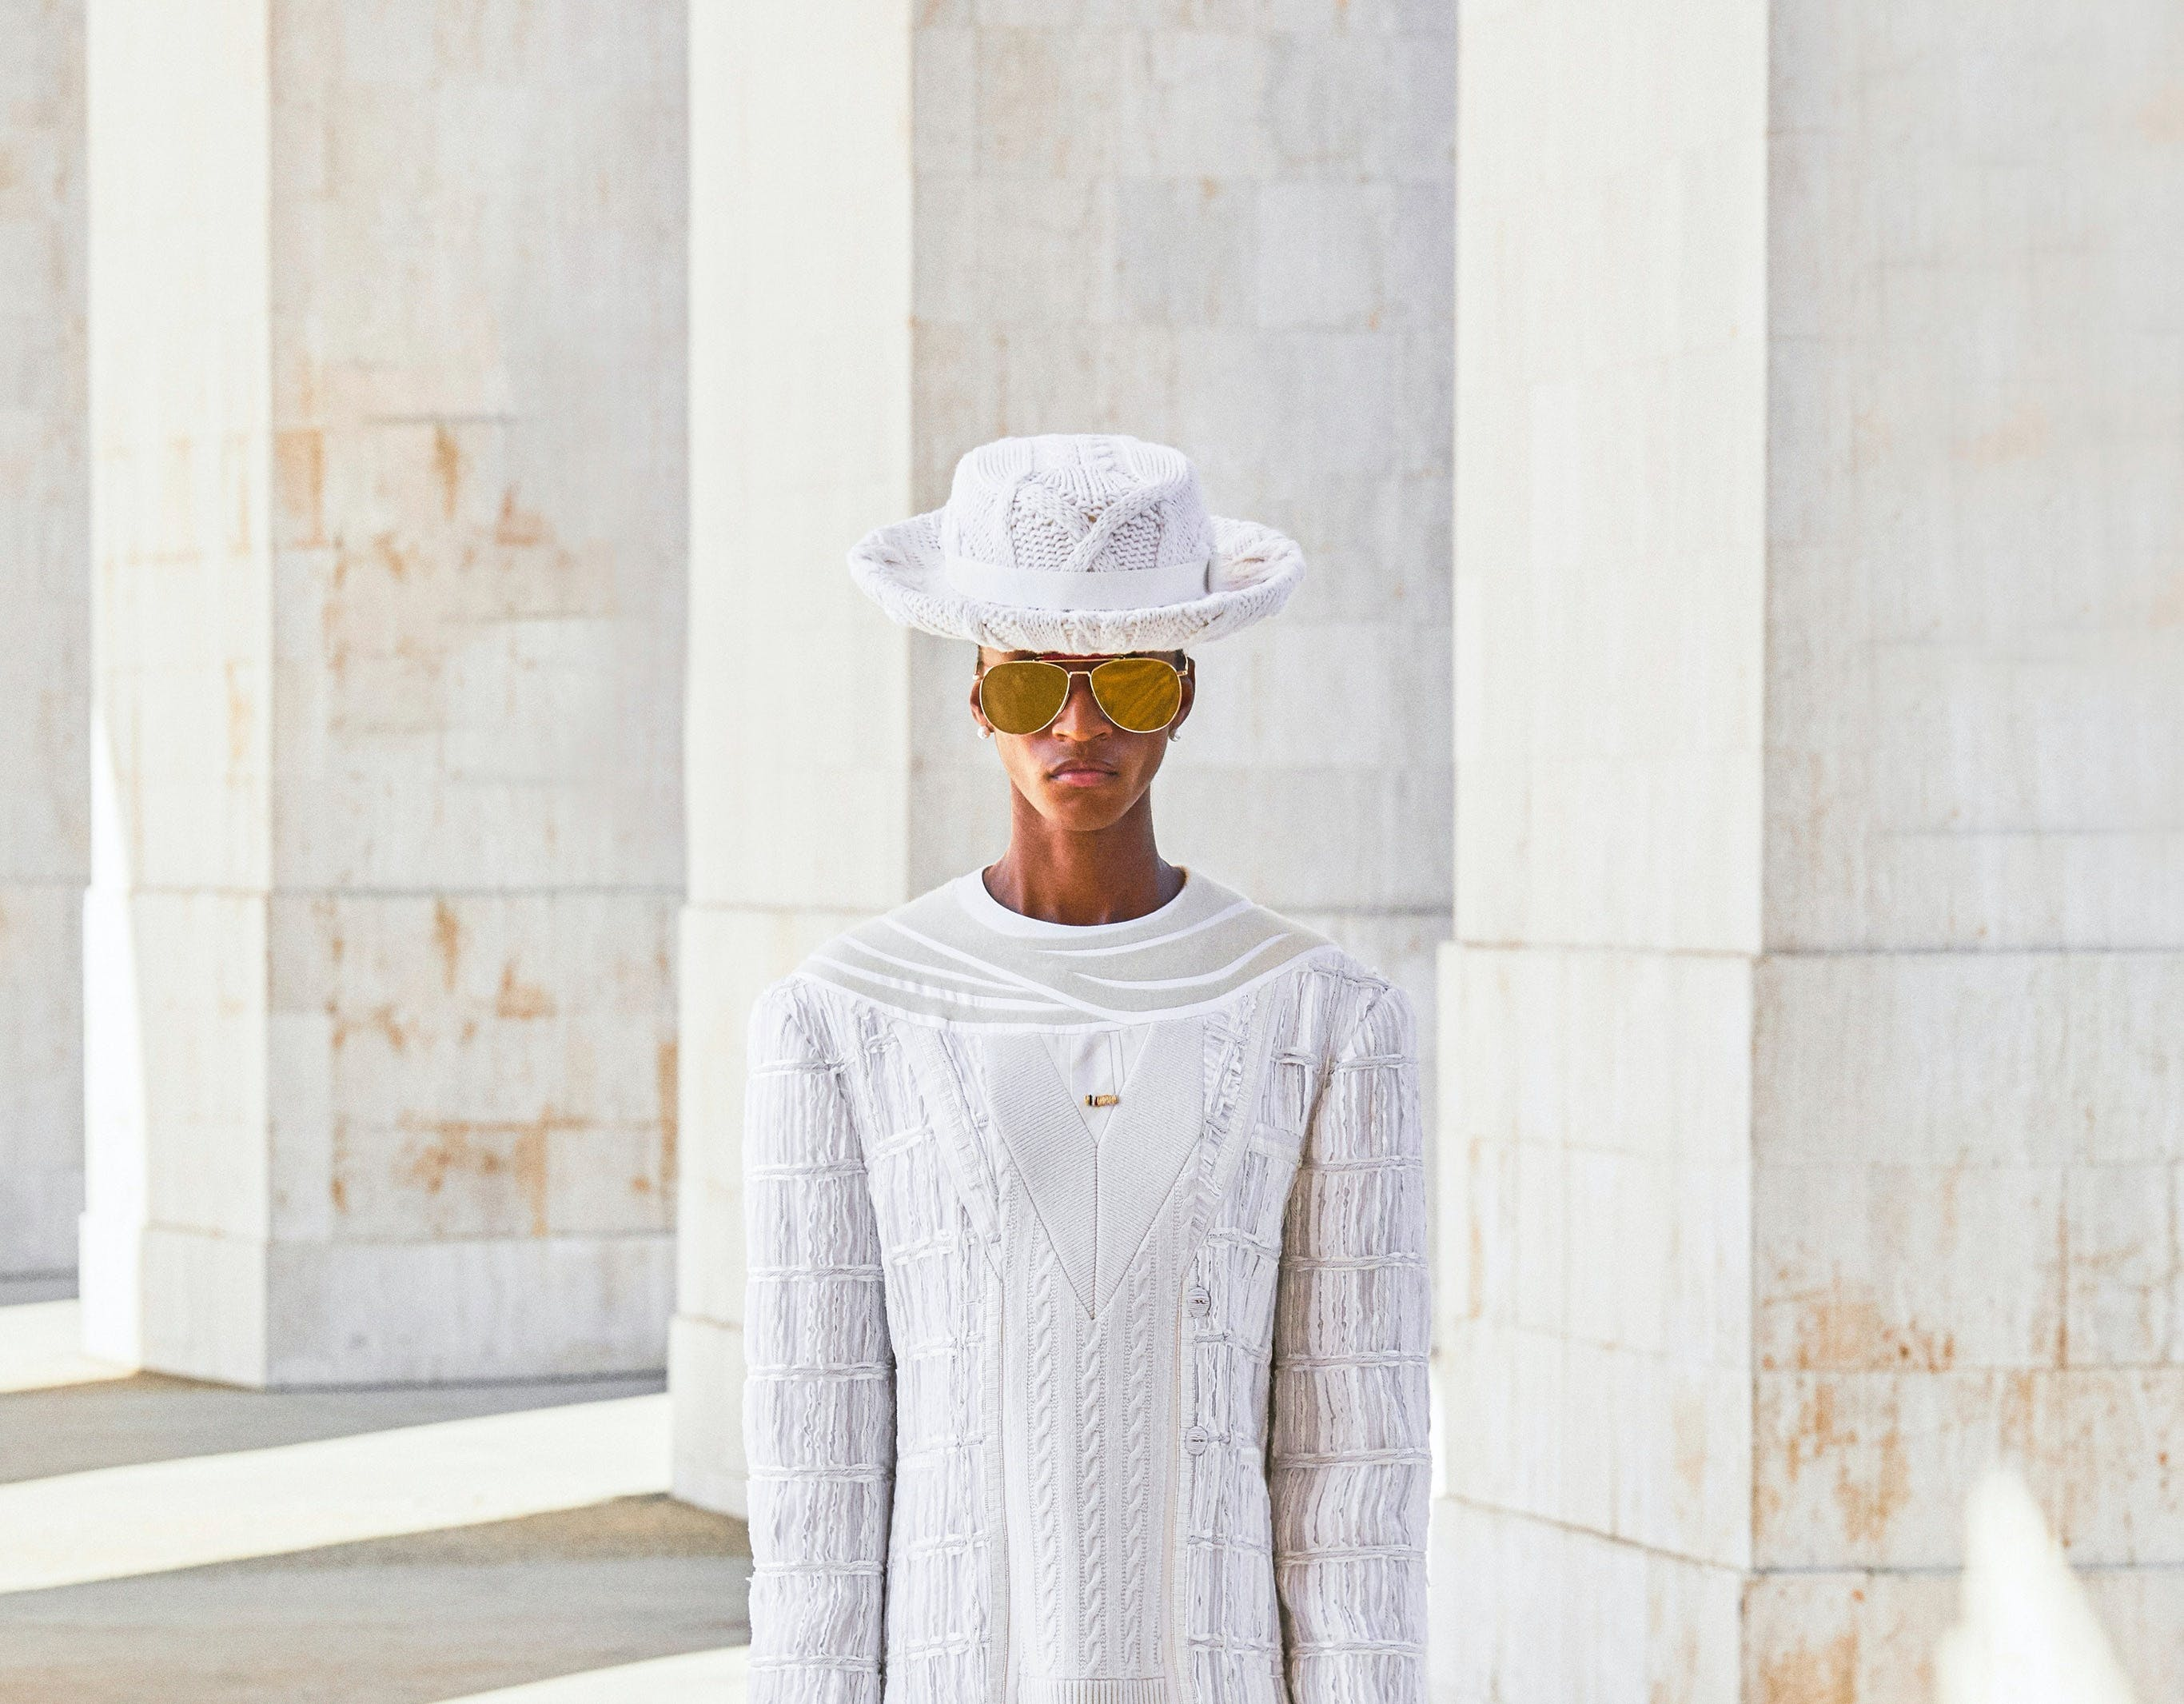 THOM BROWNE SPRING 2021 READY-TO-WEAR